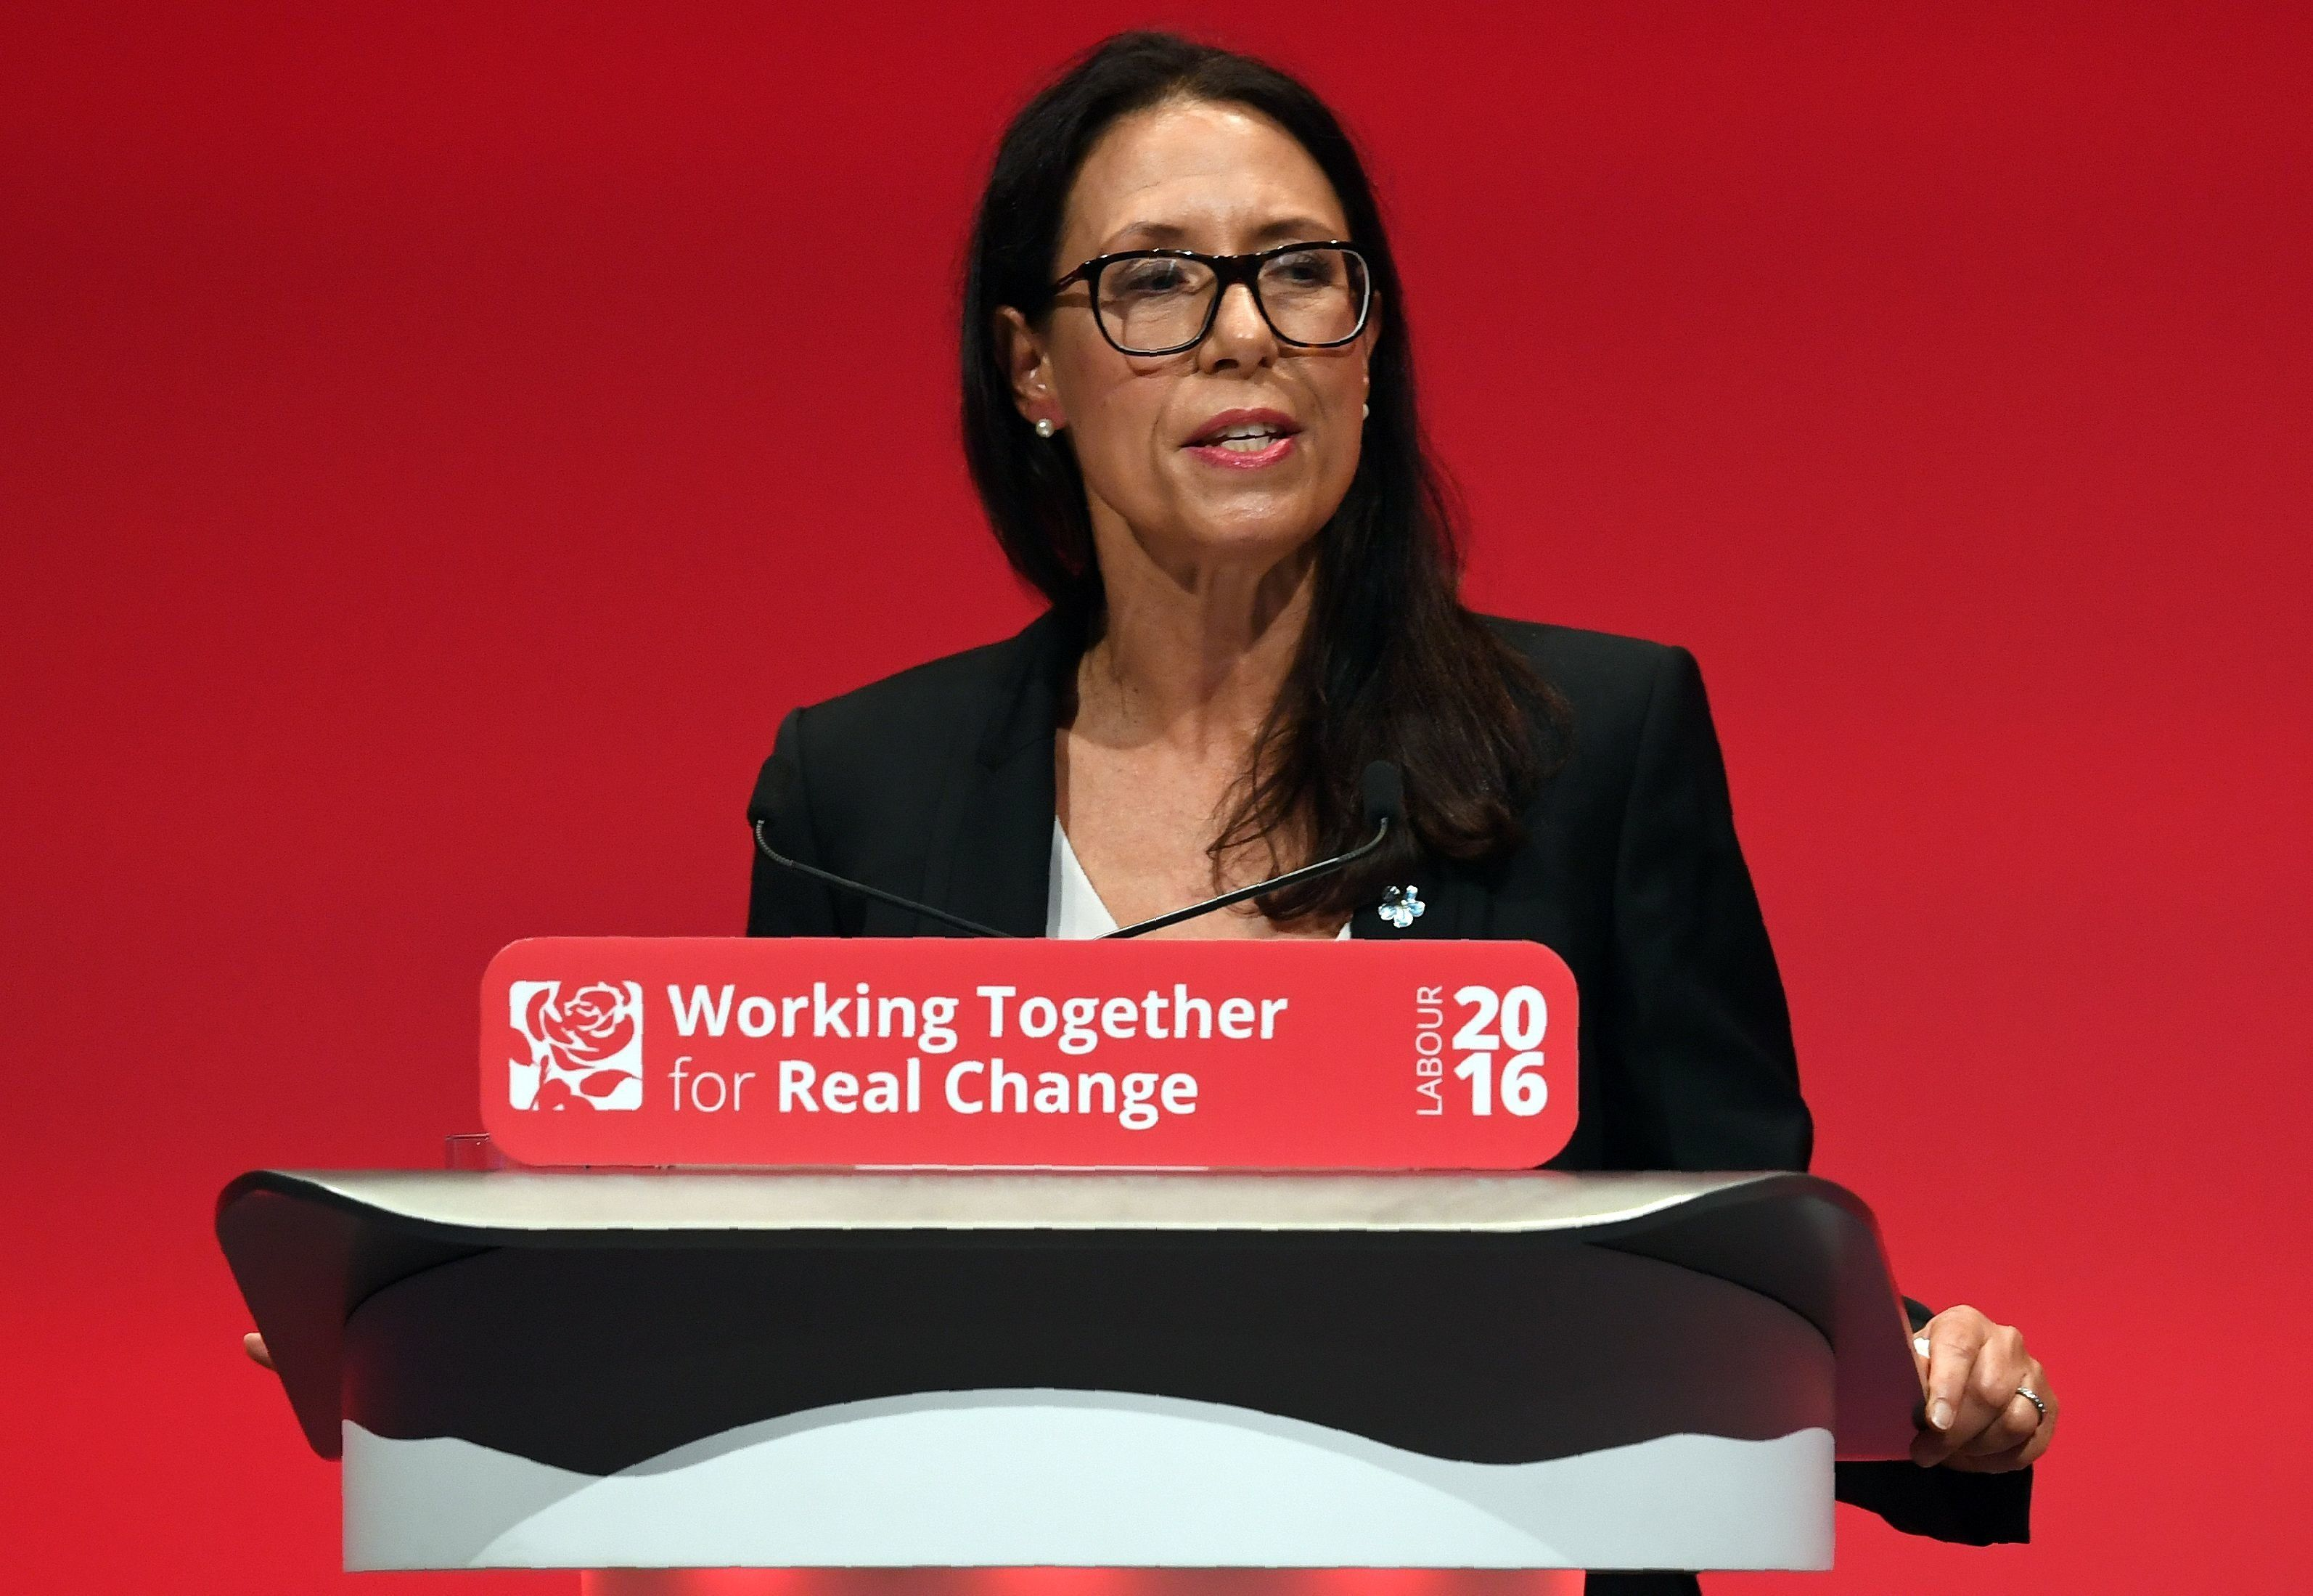 Labour Demands Apology From Philip Hammond Over Disabled Worker